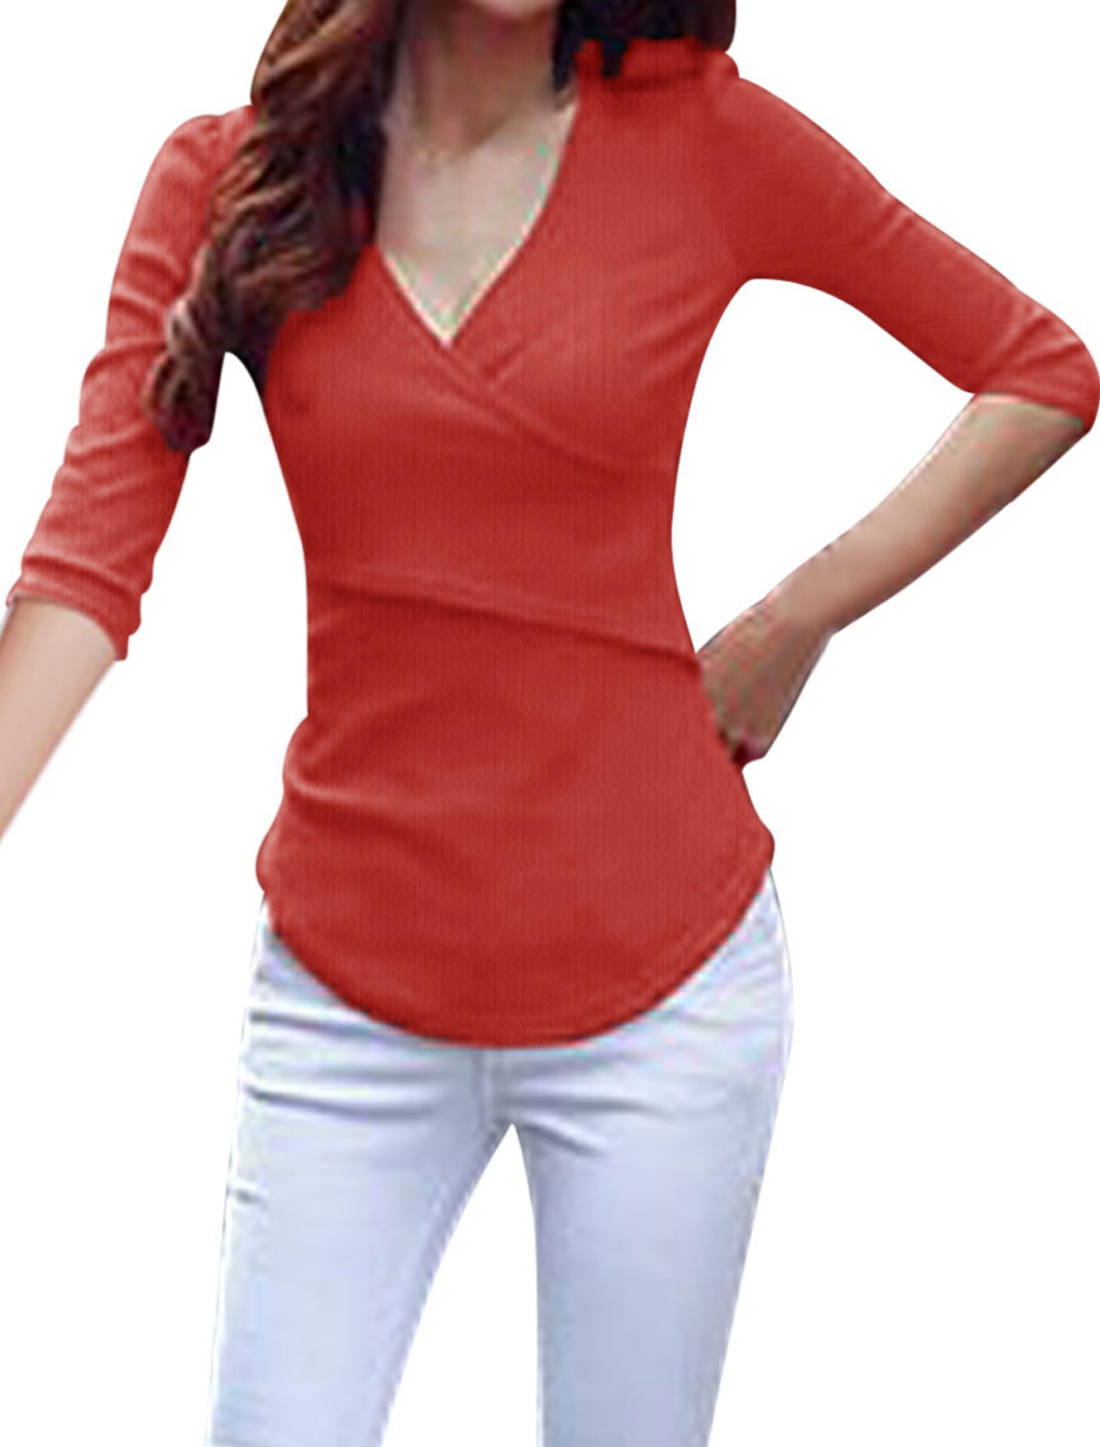 Crossover V-neck 1/2 Sleeves Red Casual Shirt for Lady M